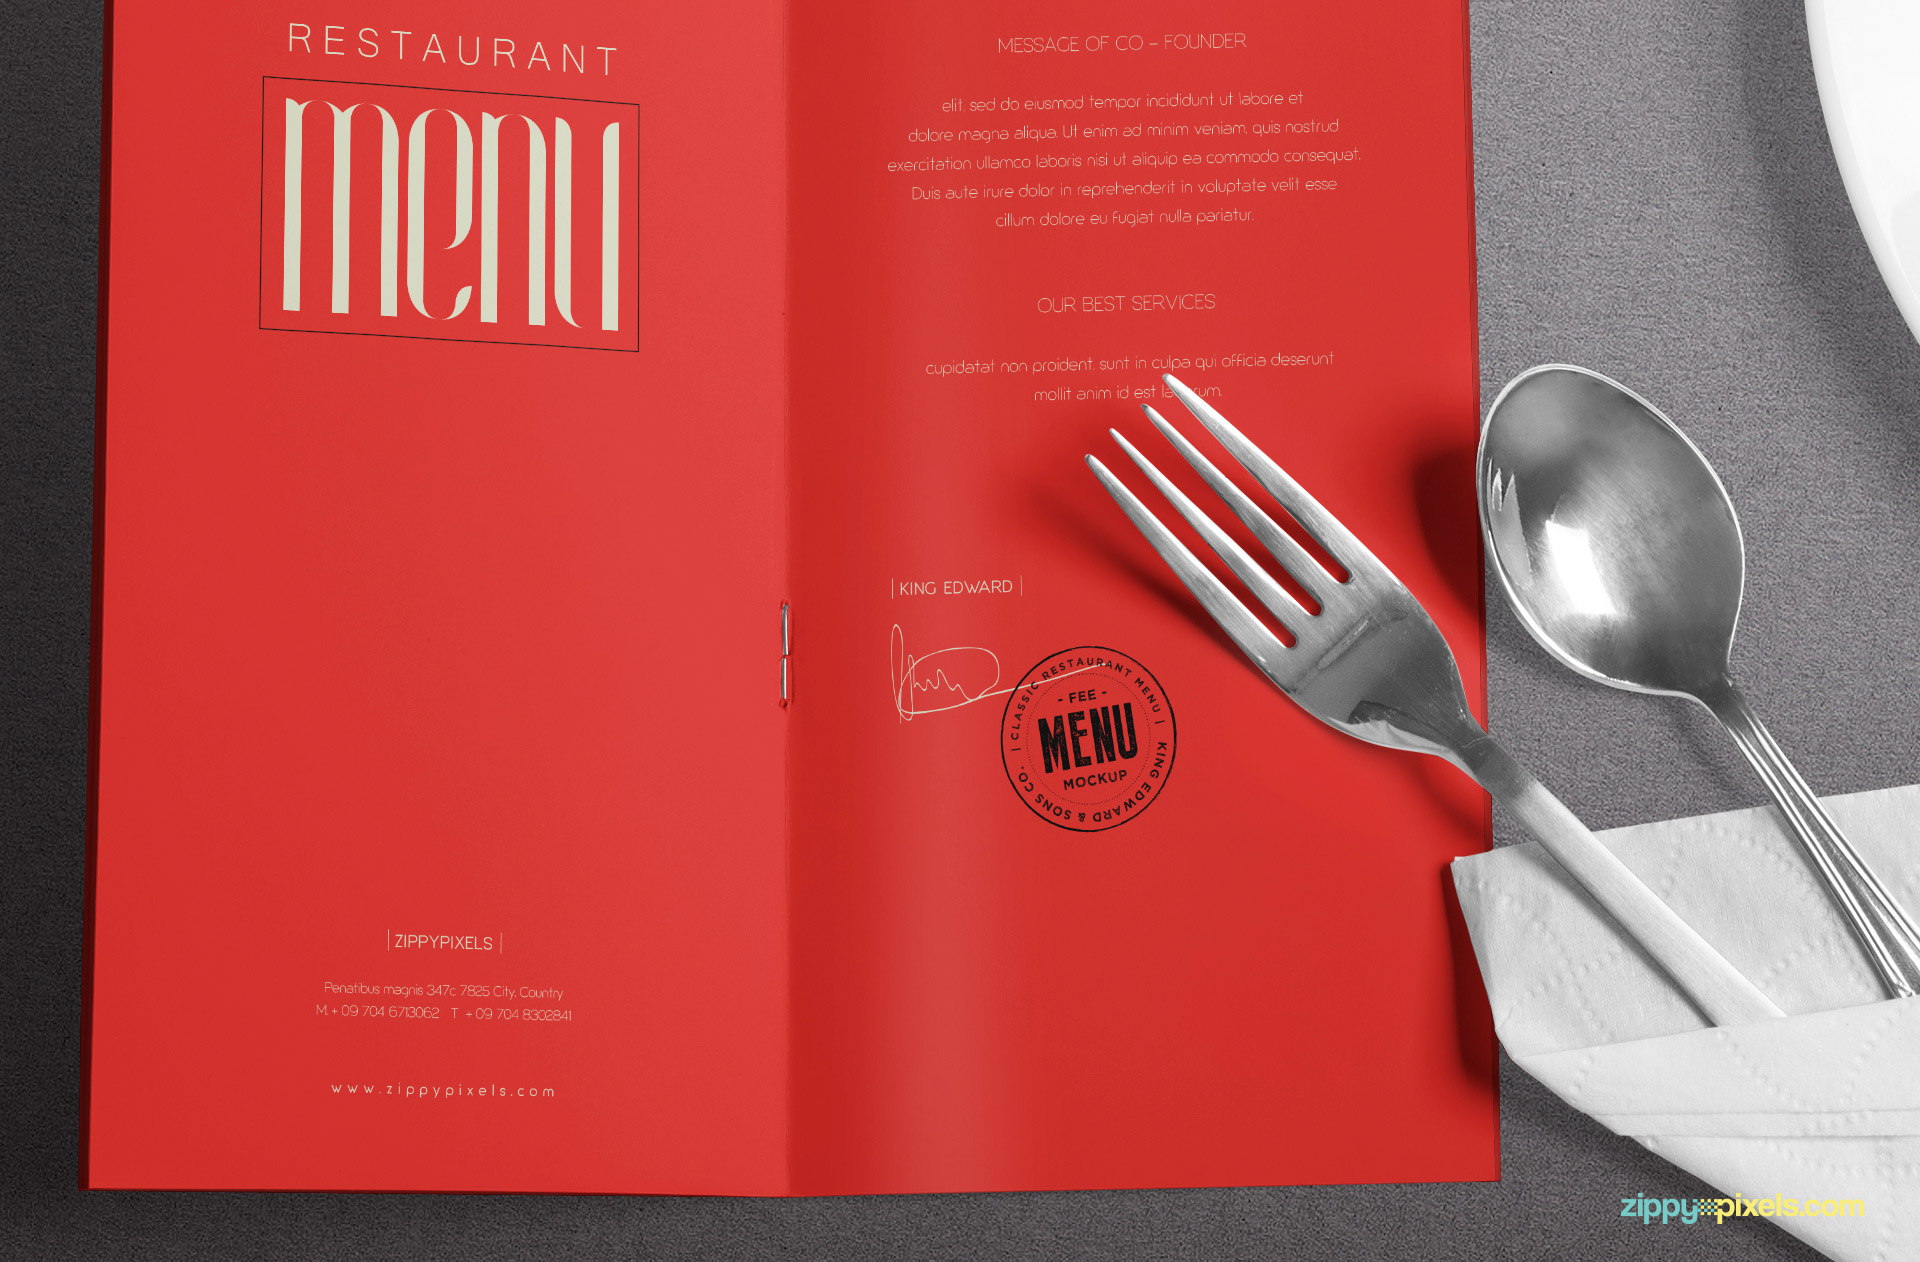 Zoom in view in of menu card and cutlery.